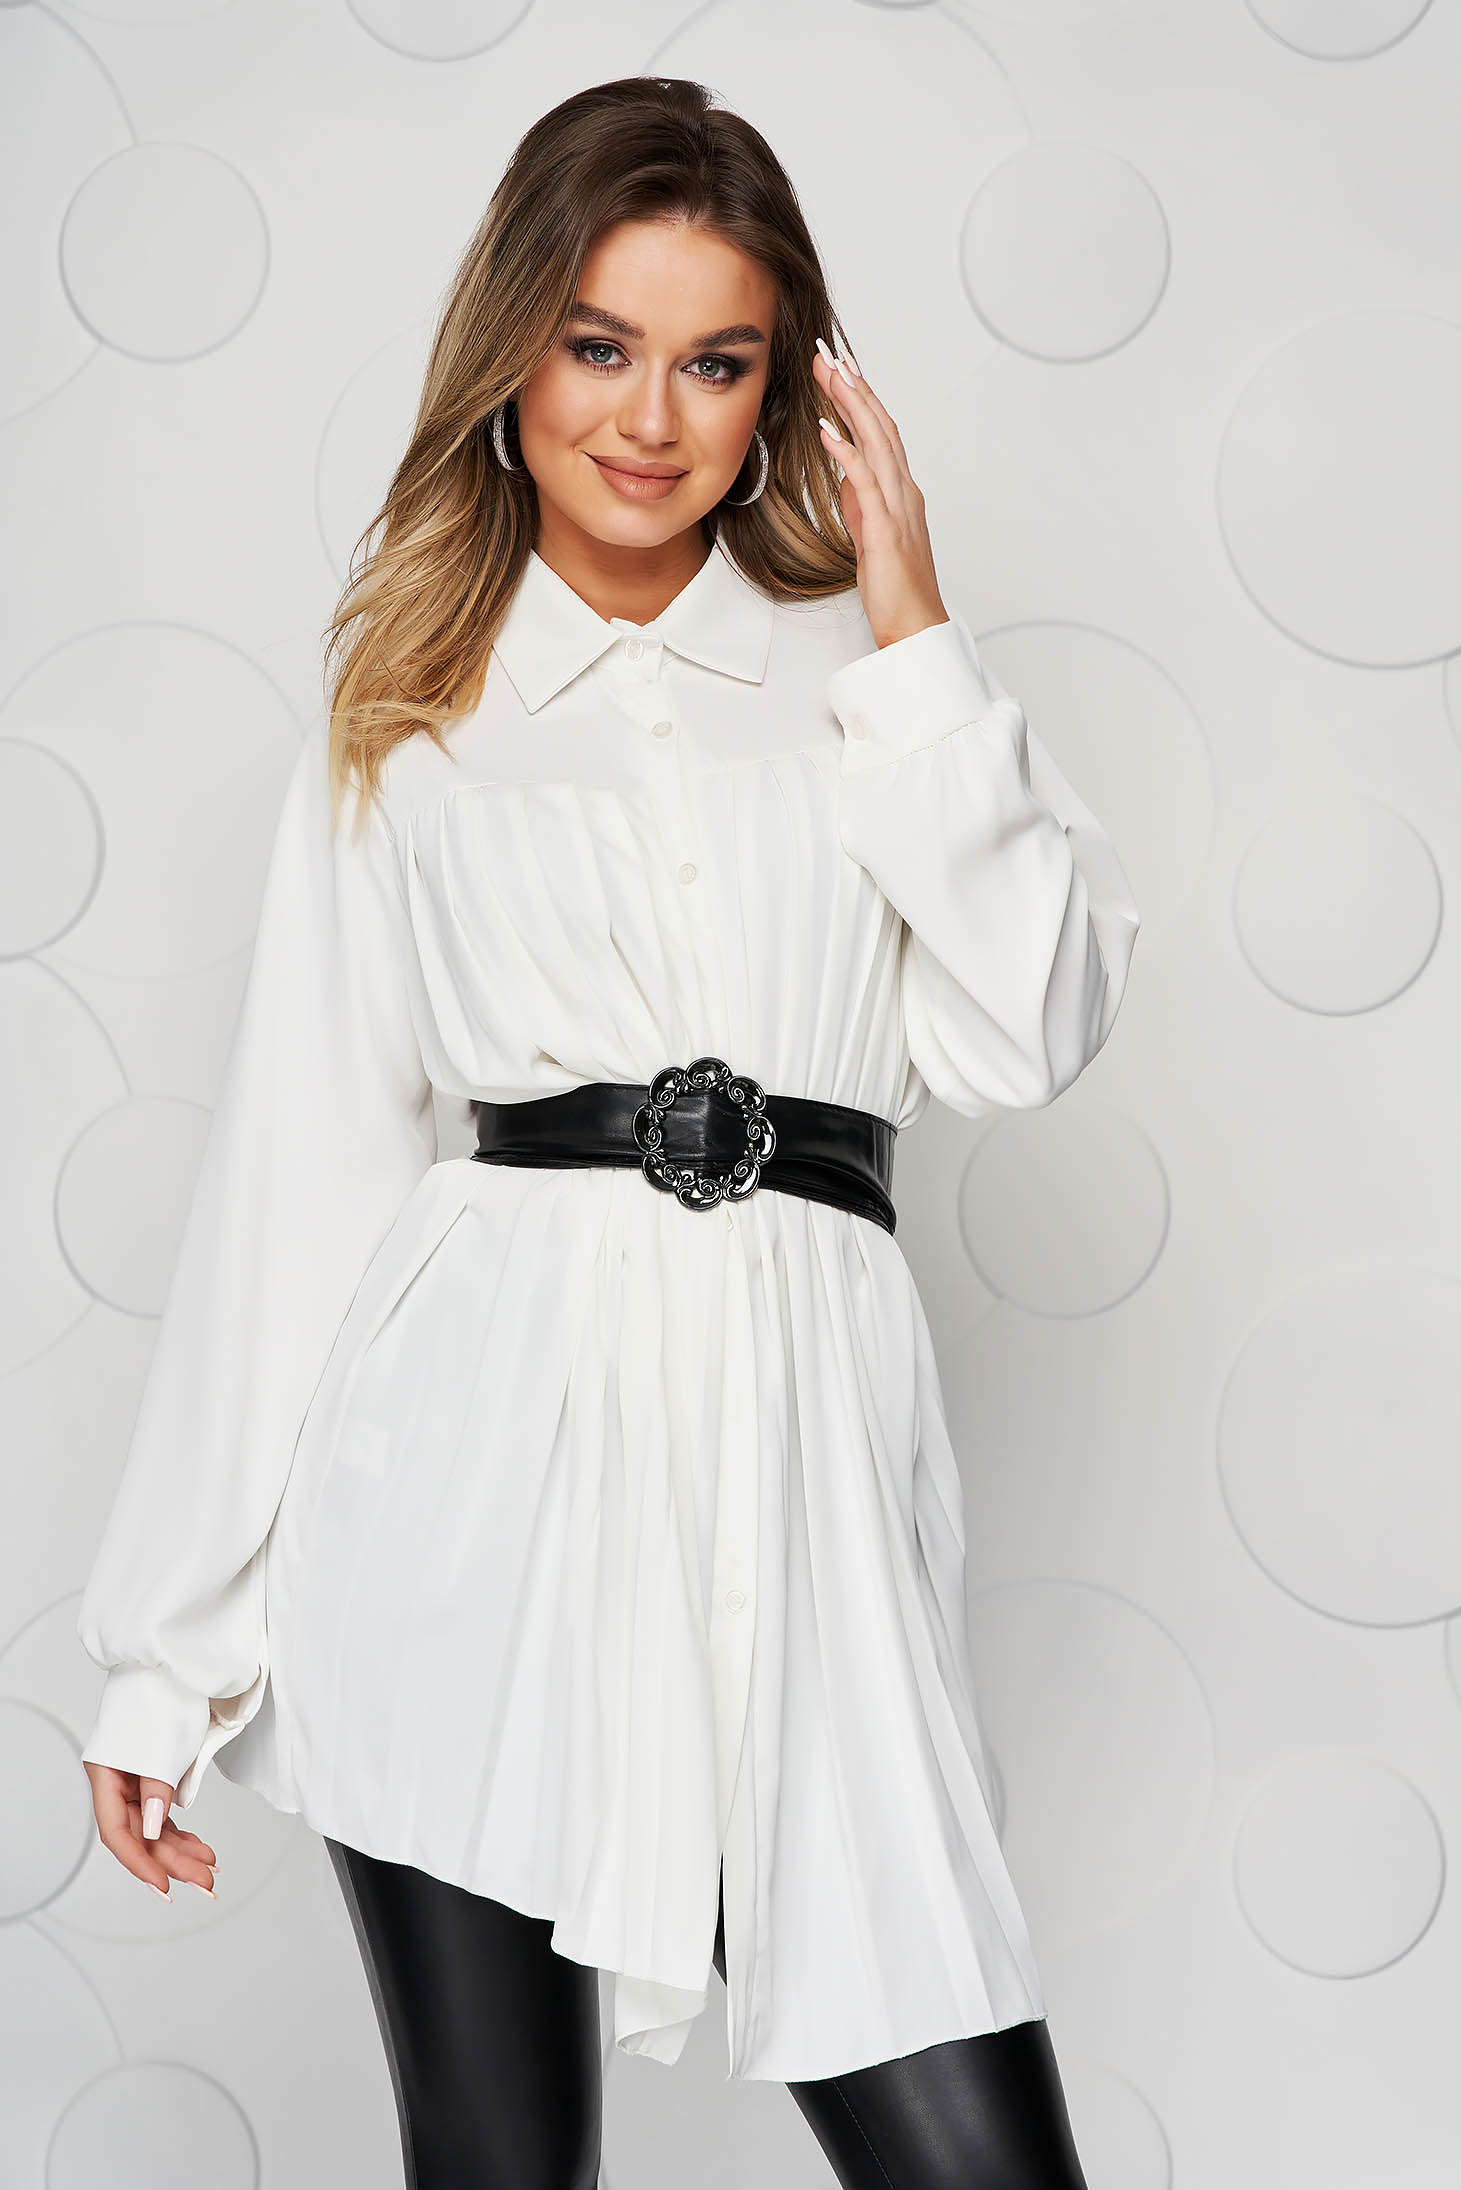 White women`s shirt transparent chiffon fabric folded up faux leather belt